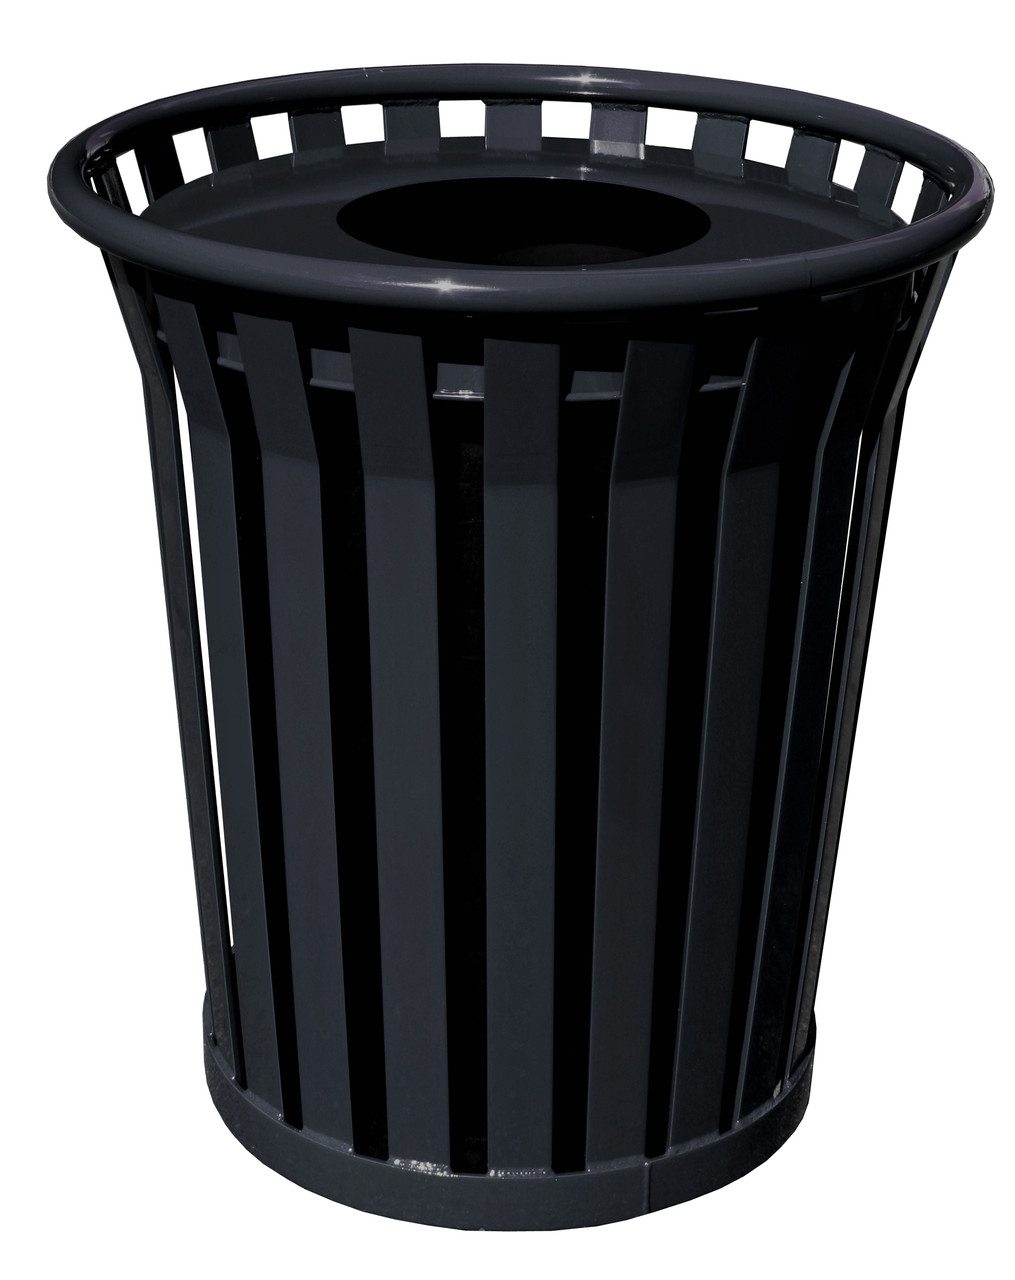 Witt 36 Gallon WC3600-FT-BK Outdoor Waste Receptacle Black